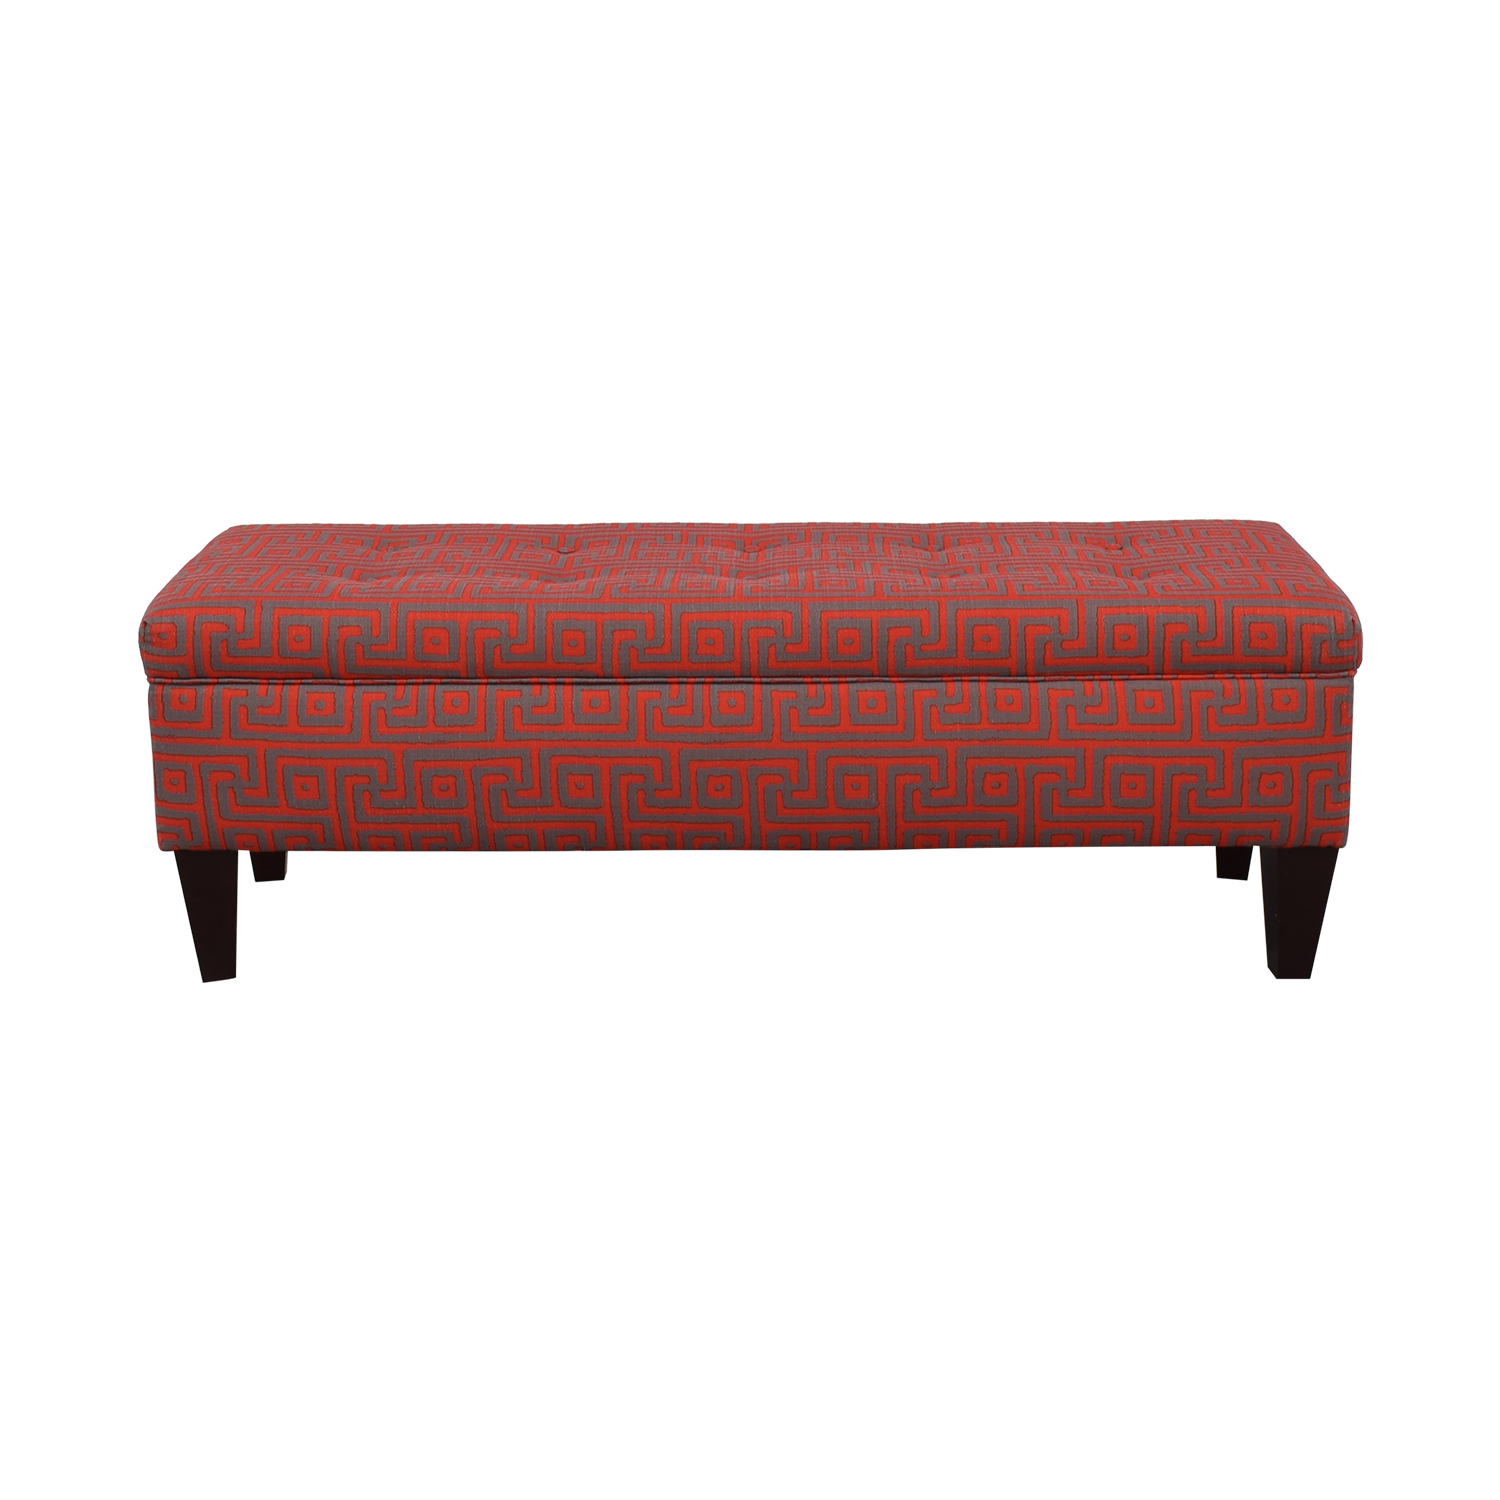 Sole Designs Sole Designs Brooke Red Upholstered Storage Bench second hand